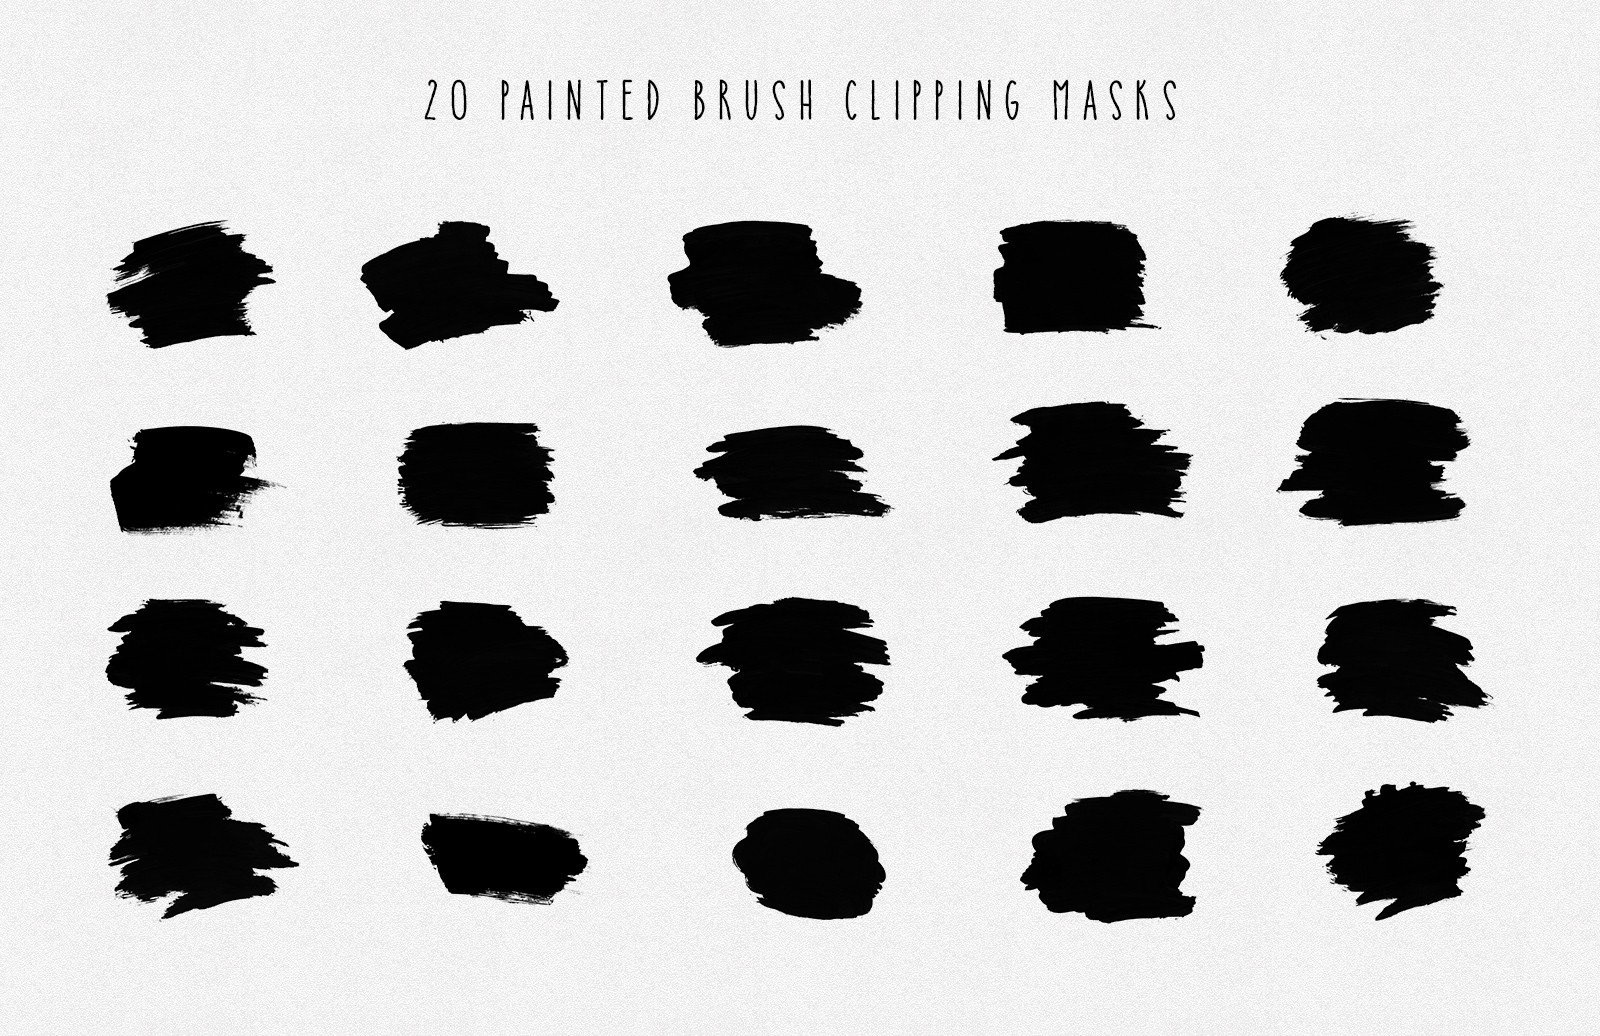 Large Hand  Painted  Brush  Clipping  Masks  Preview 5